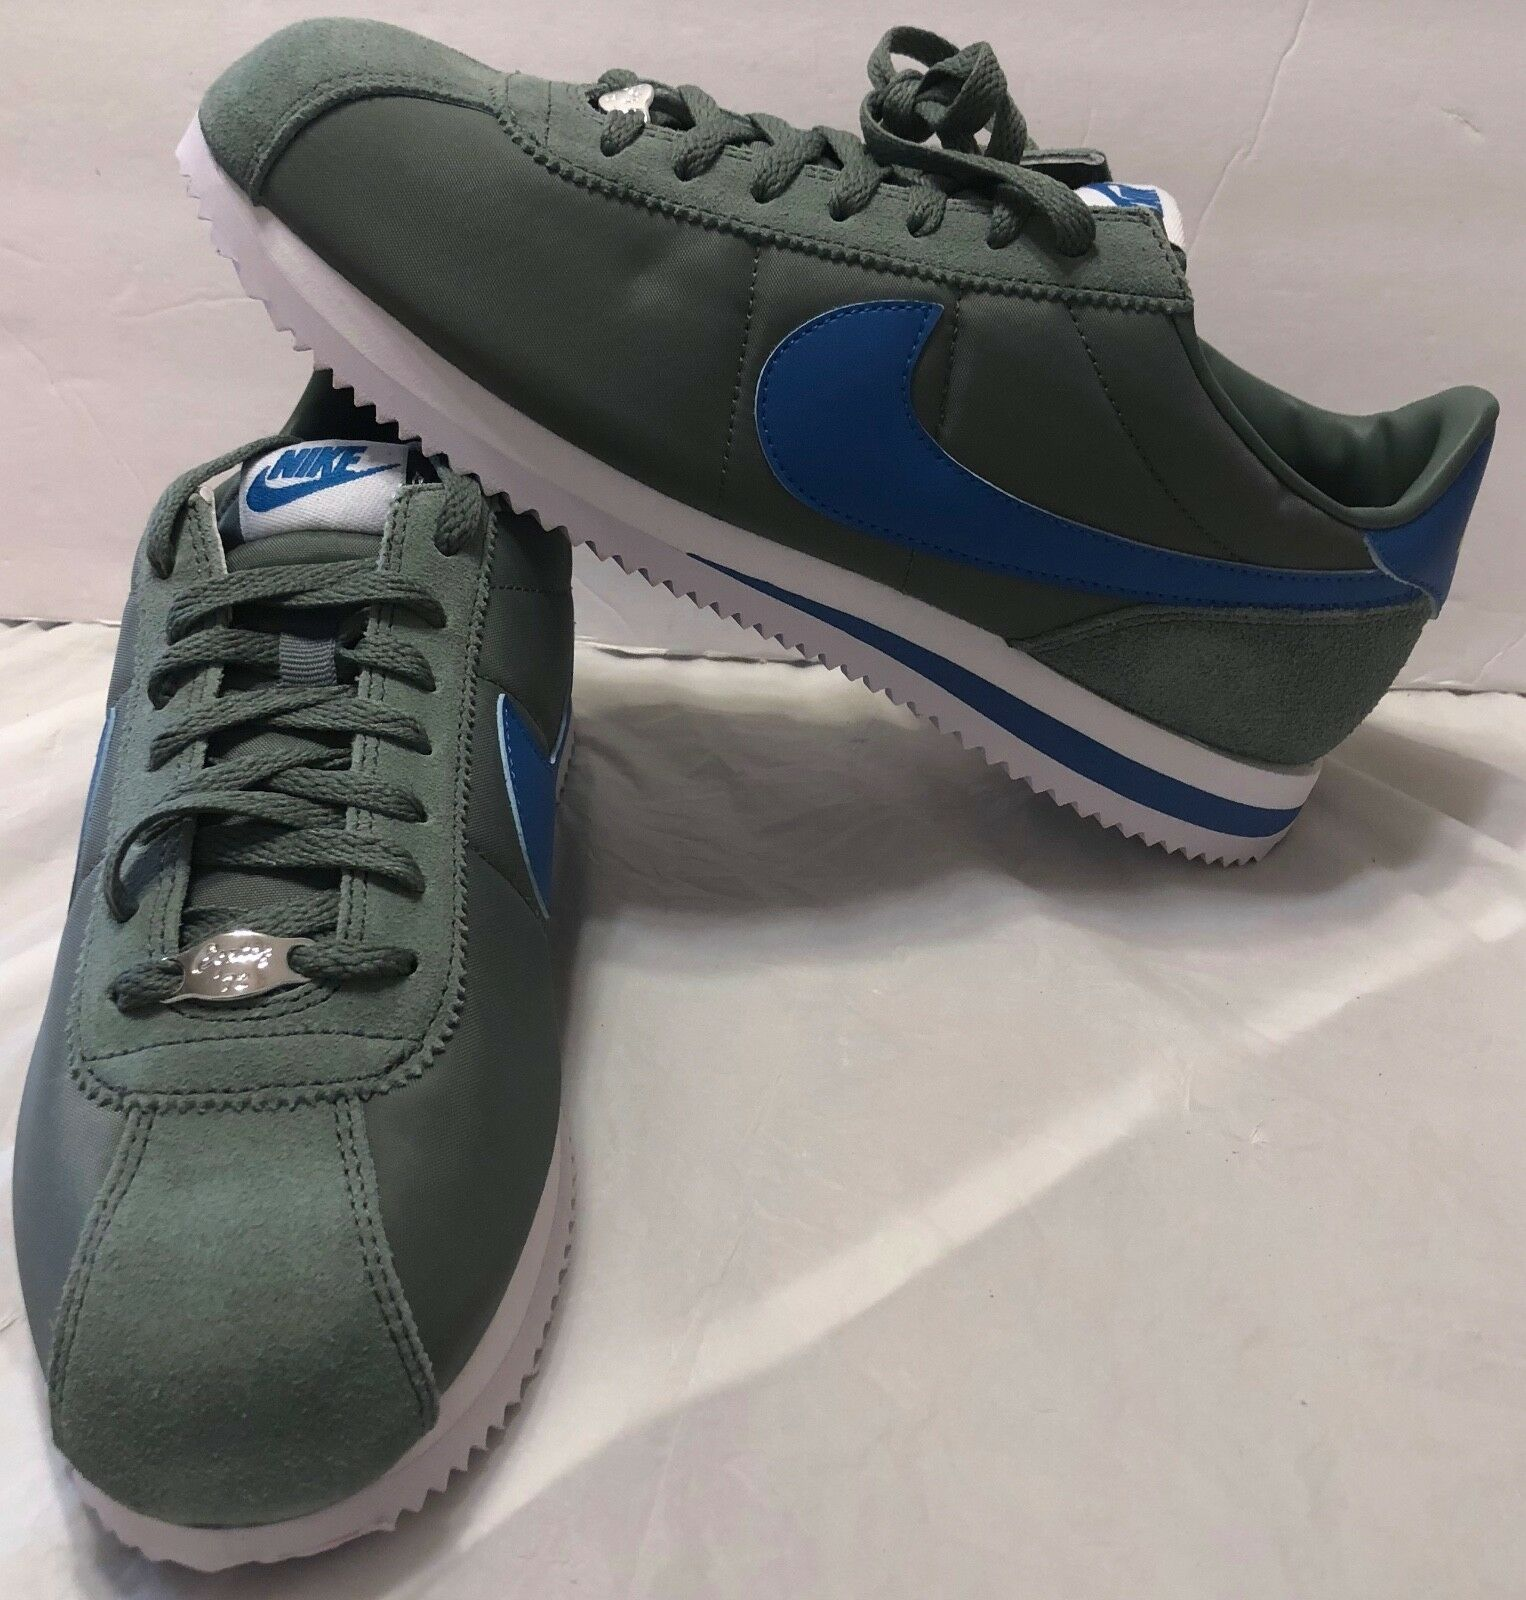 Nike Cortez Men Sz 9 Nylon Clay Green bluee Nebula-White 819720 300 Low Classic